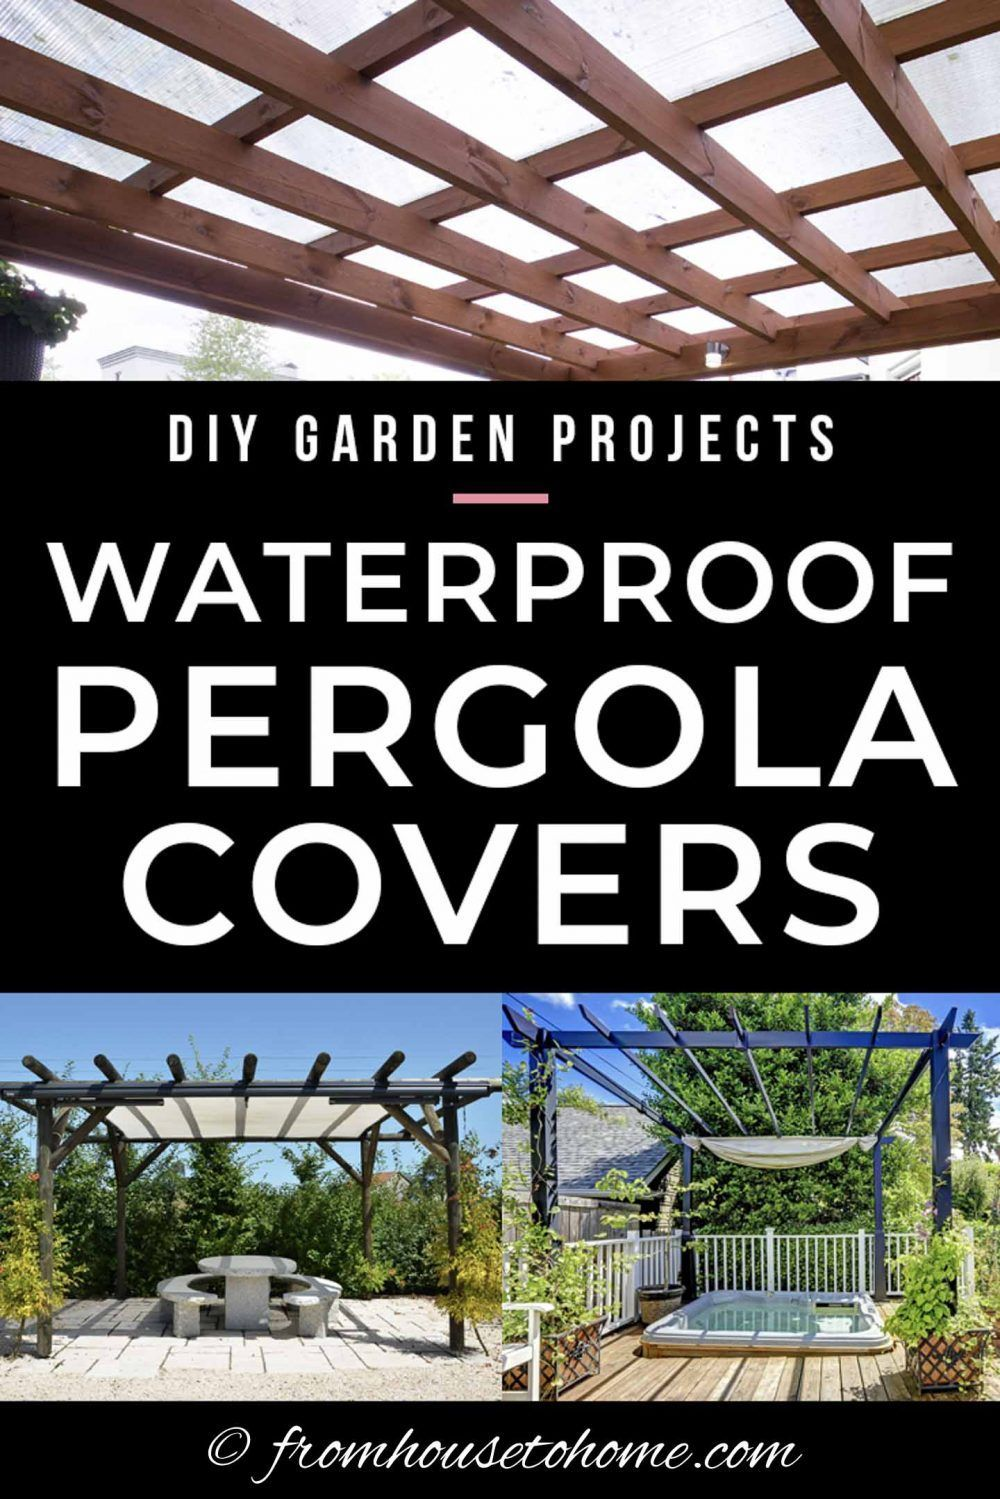 DIY Waterproof Pergola Cover Ideas: 7 Ways To Protect Your ... on Backyard Porch Ideas Covered Decks Diy id=51340